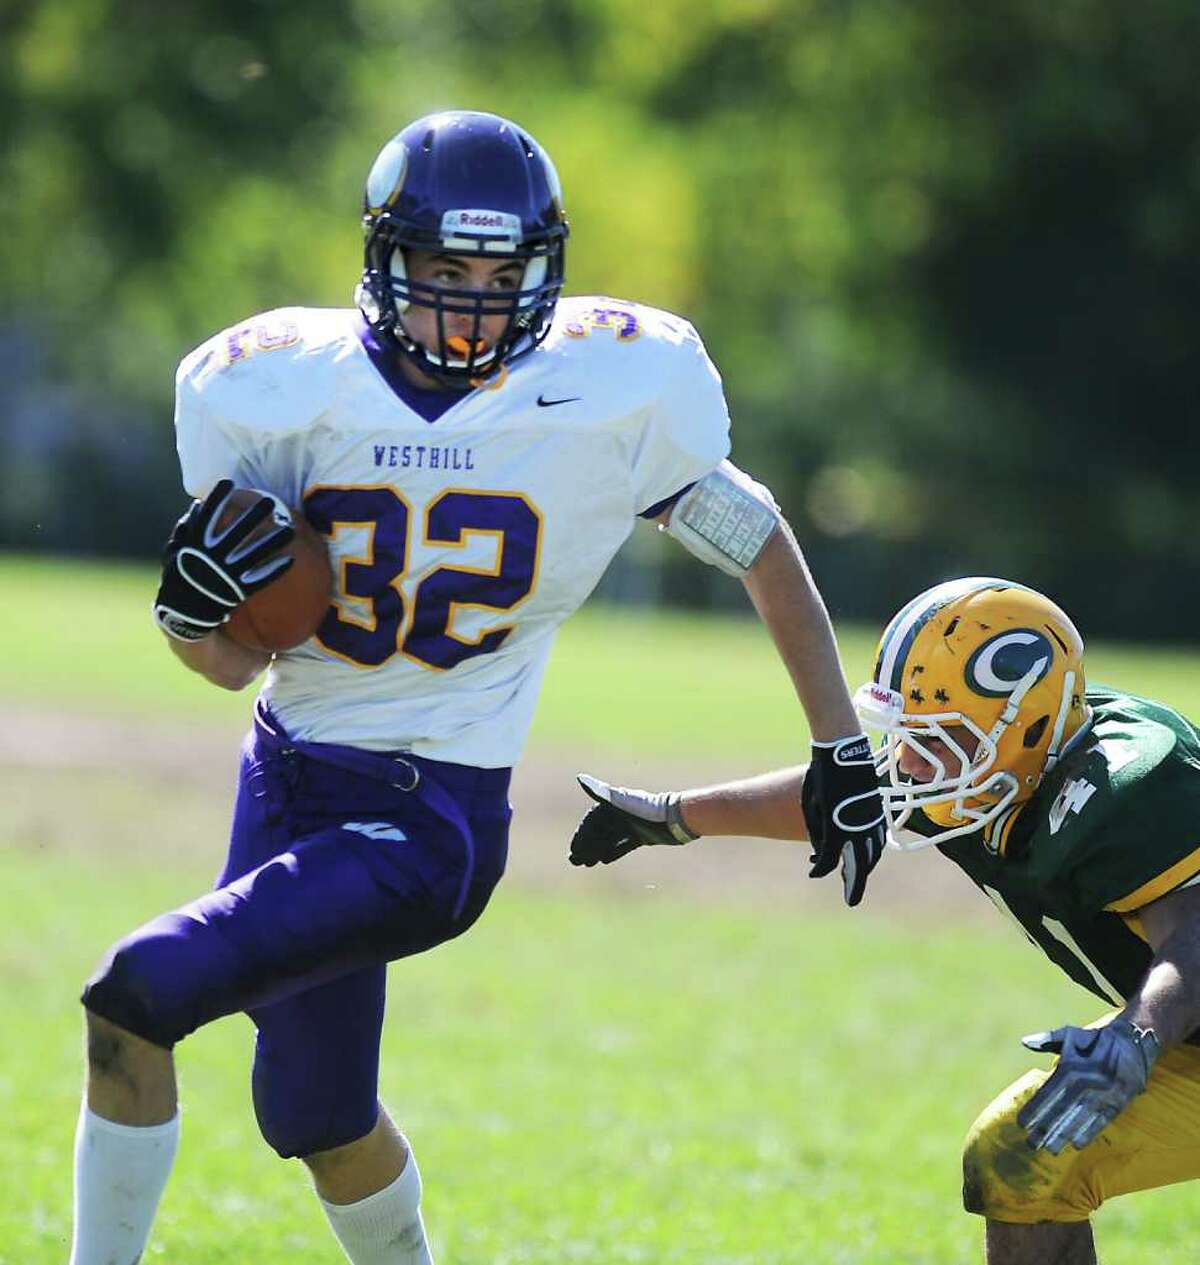 Westhill High School's David Engel carries the ball against Trinity Catholic High School's Tyler Zaro in city rivalry football action at Trinity in Stamford, Conn. on Saturday October 2, 2010.